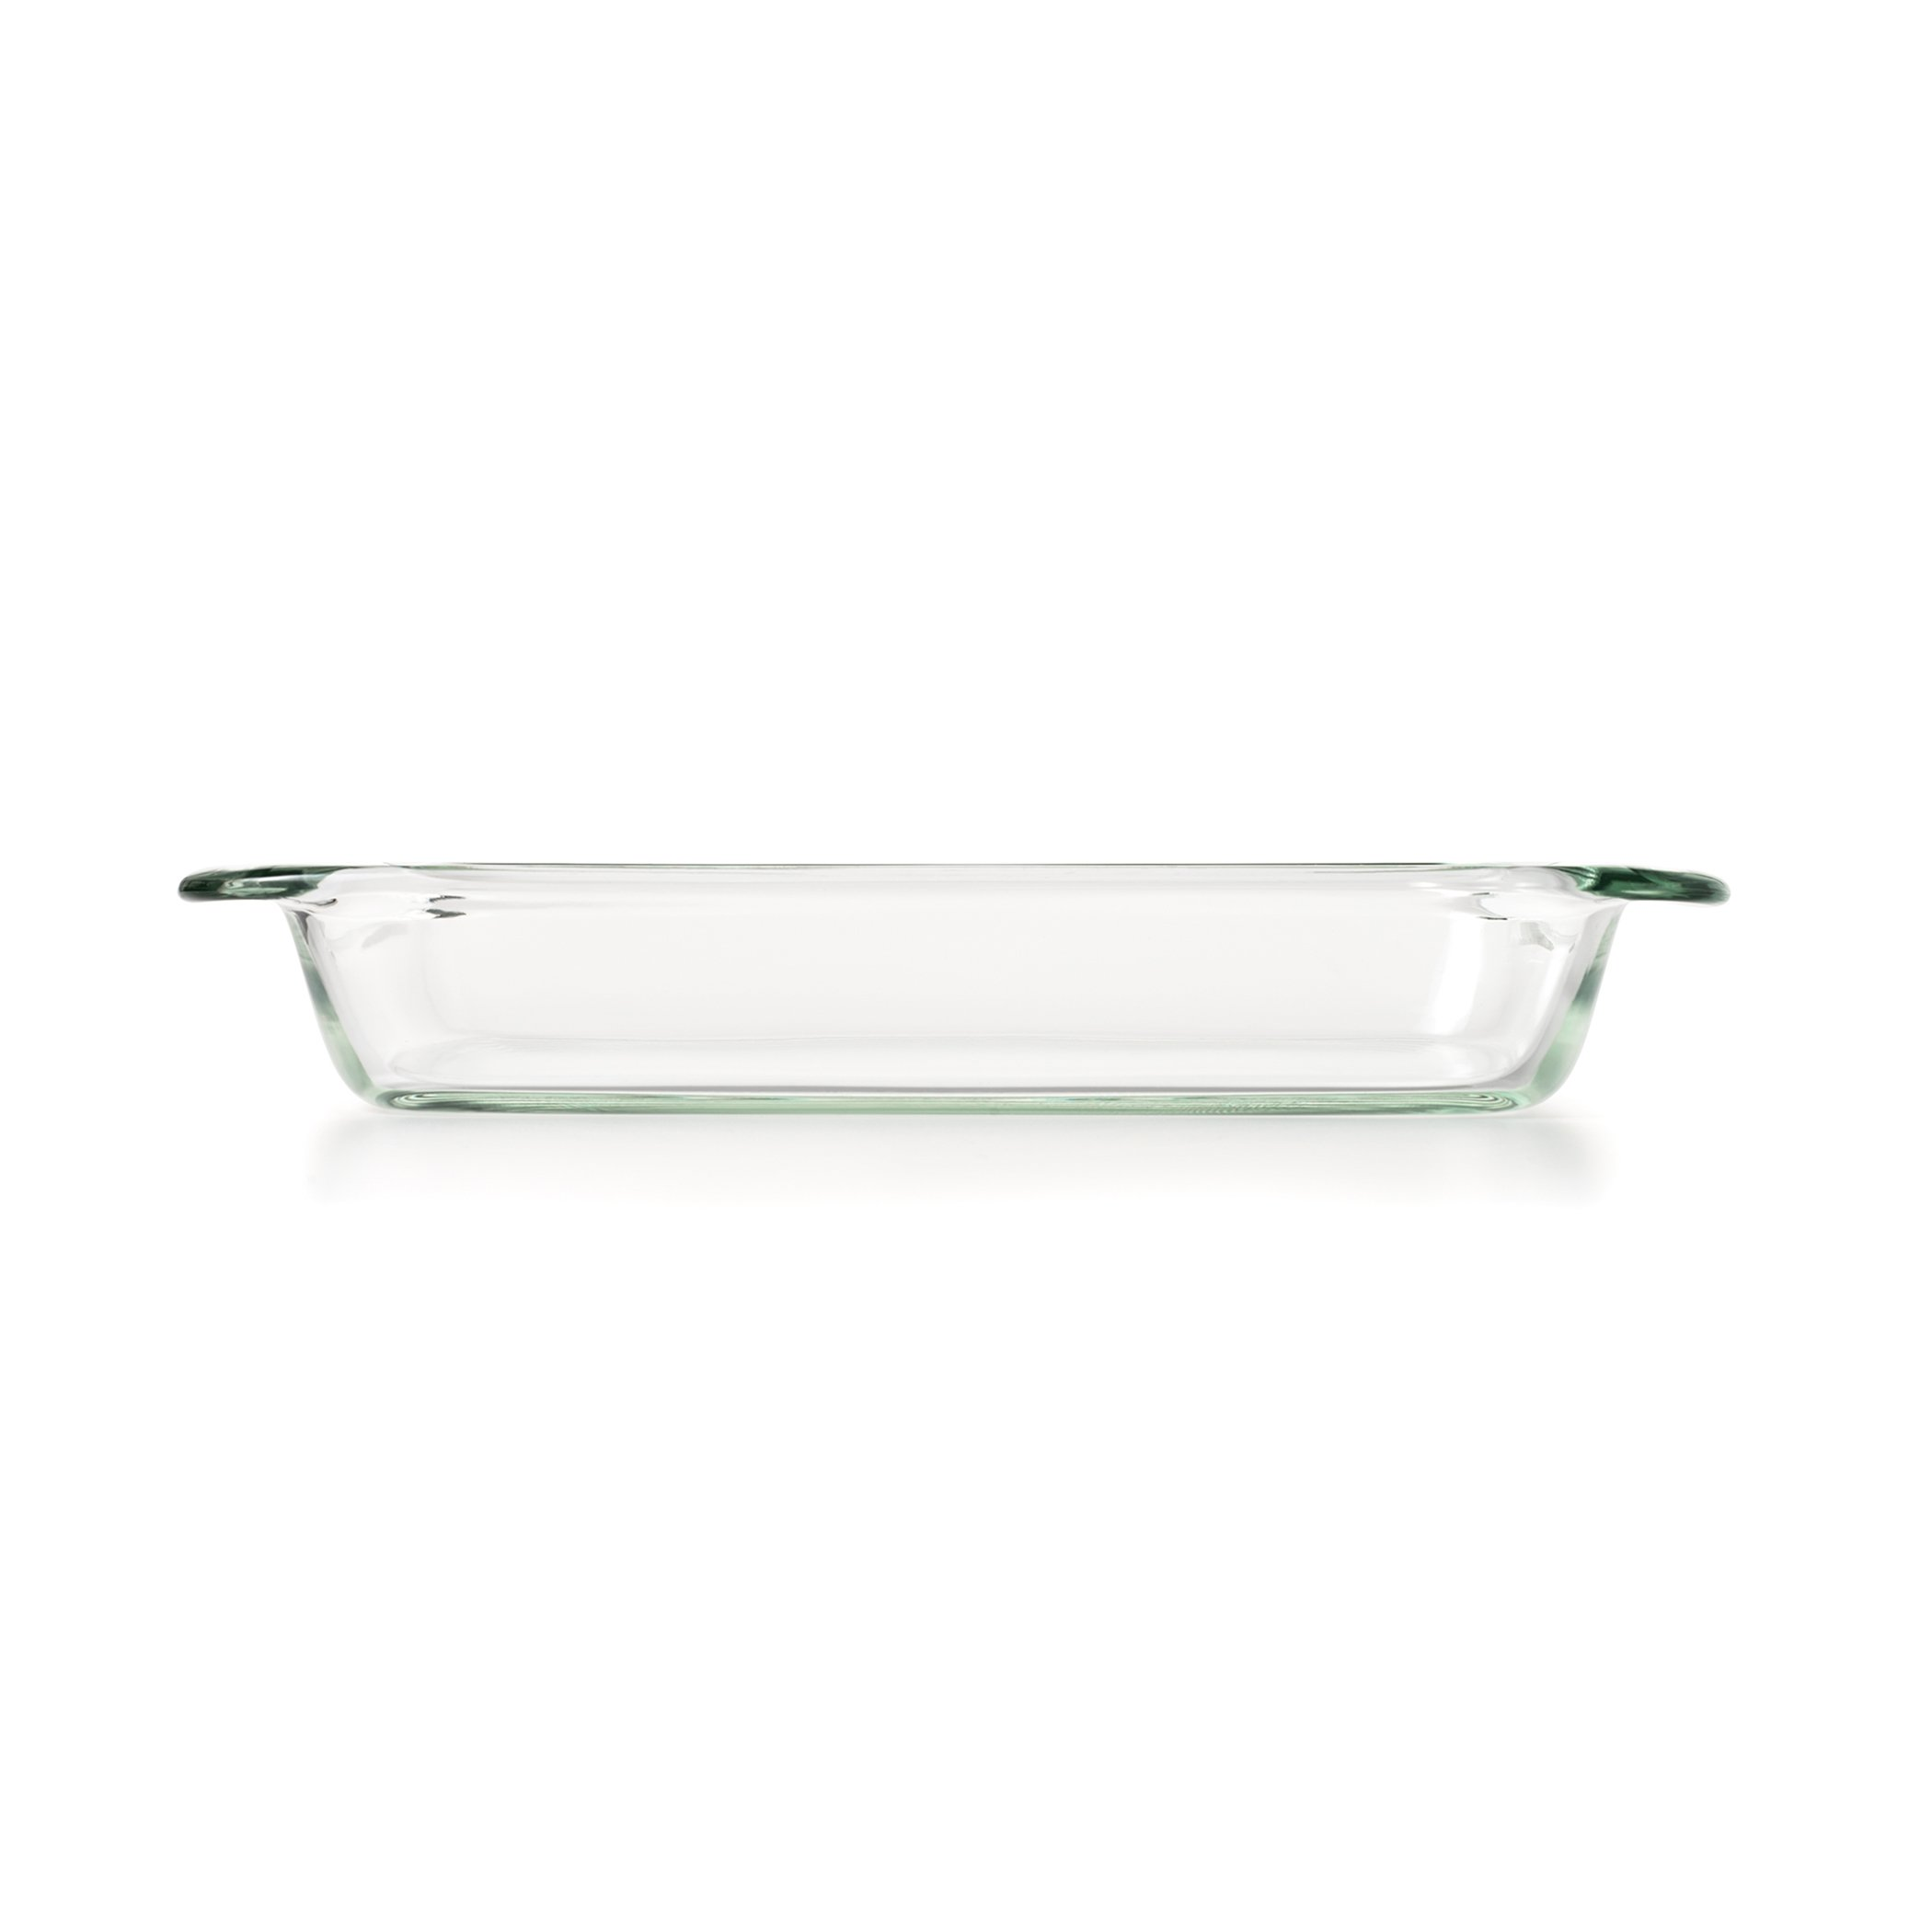 OXO Good Grips Freezer-to-Oven Safe 3 Qt Glass Baking Dish with Lid, 9 x 13 by OXO (Image #9)